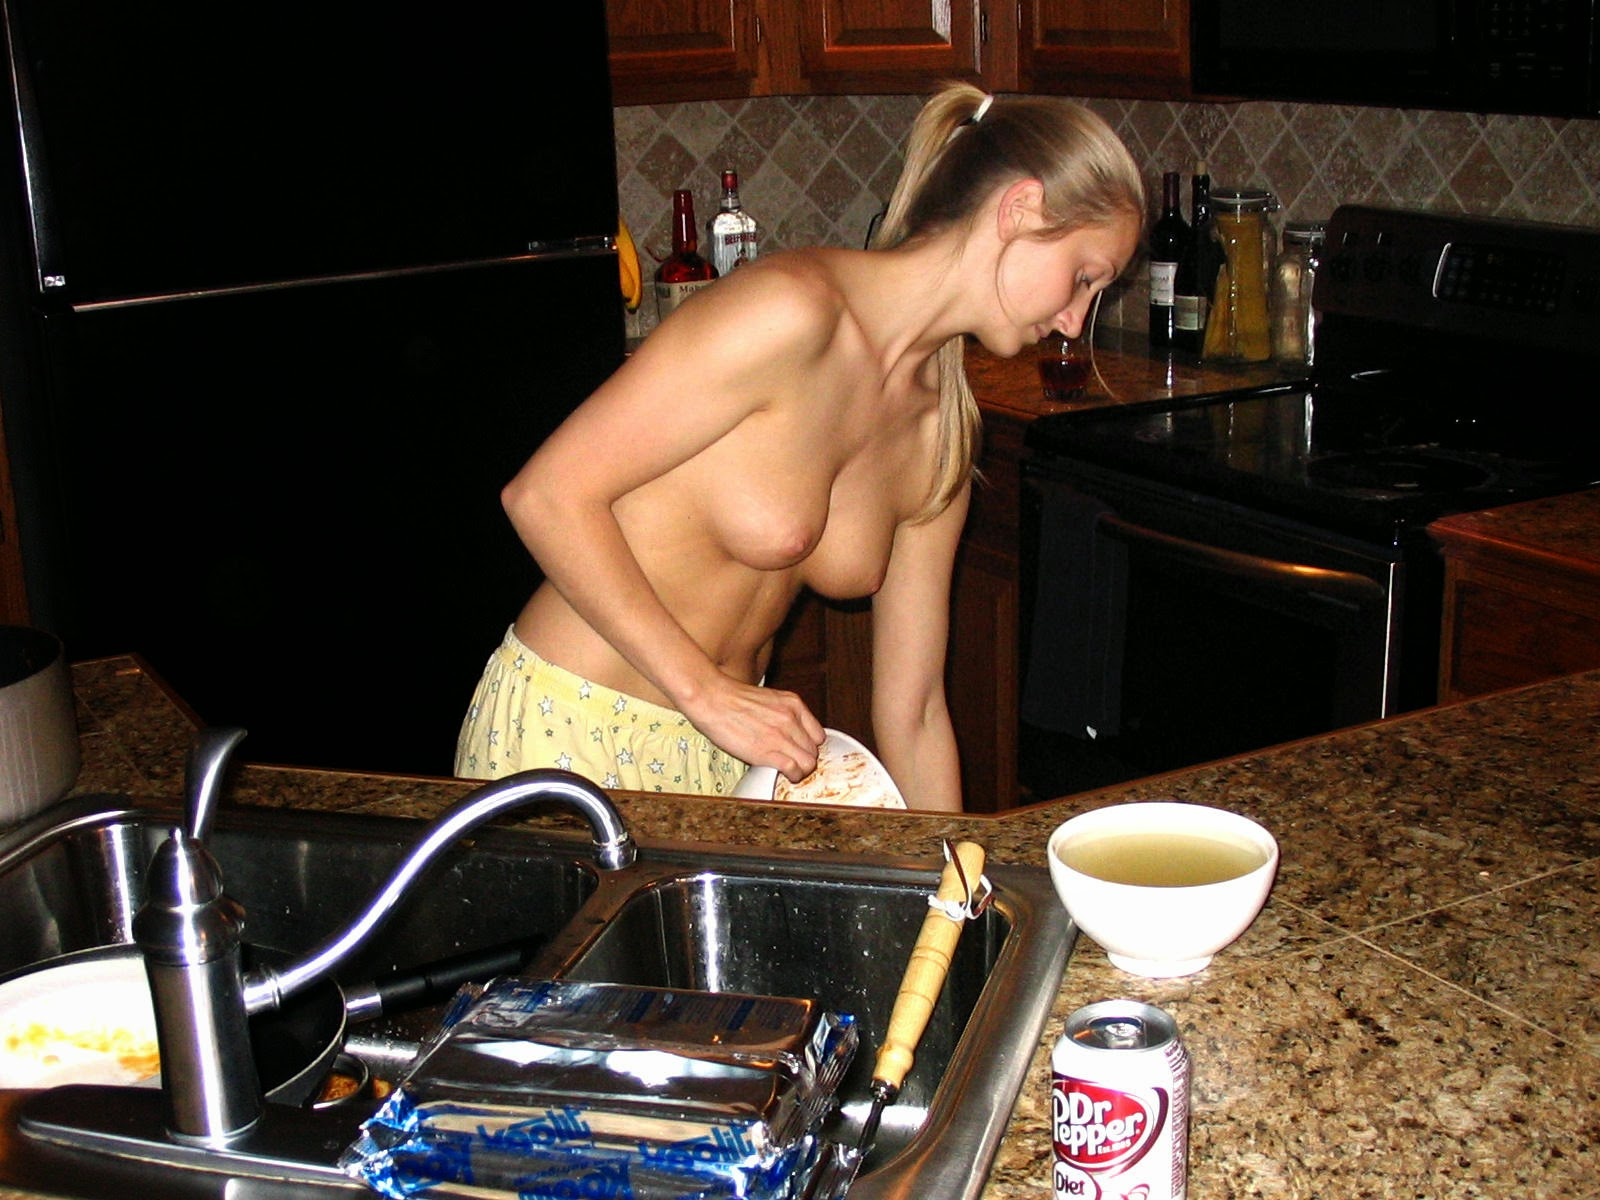 Hot girl cooking penis naked